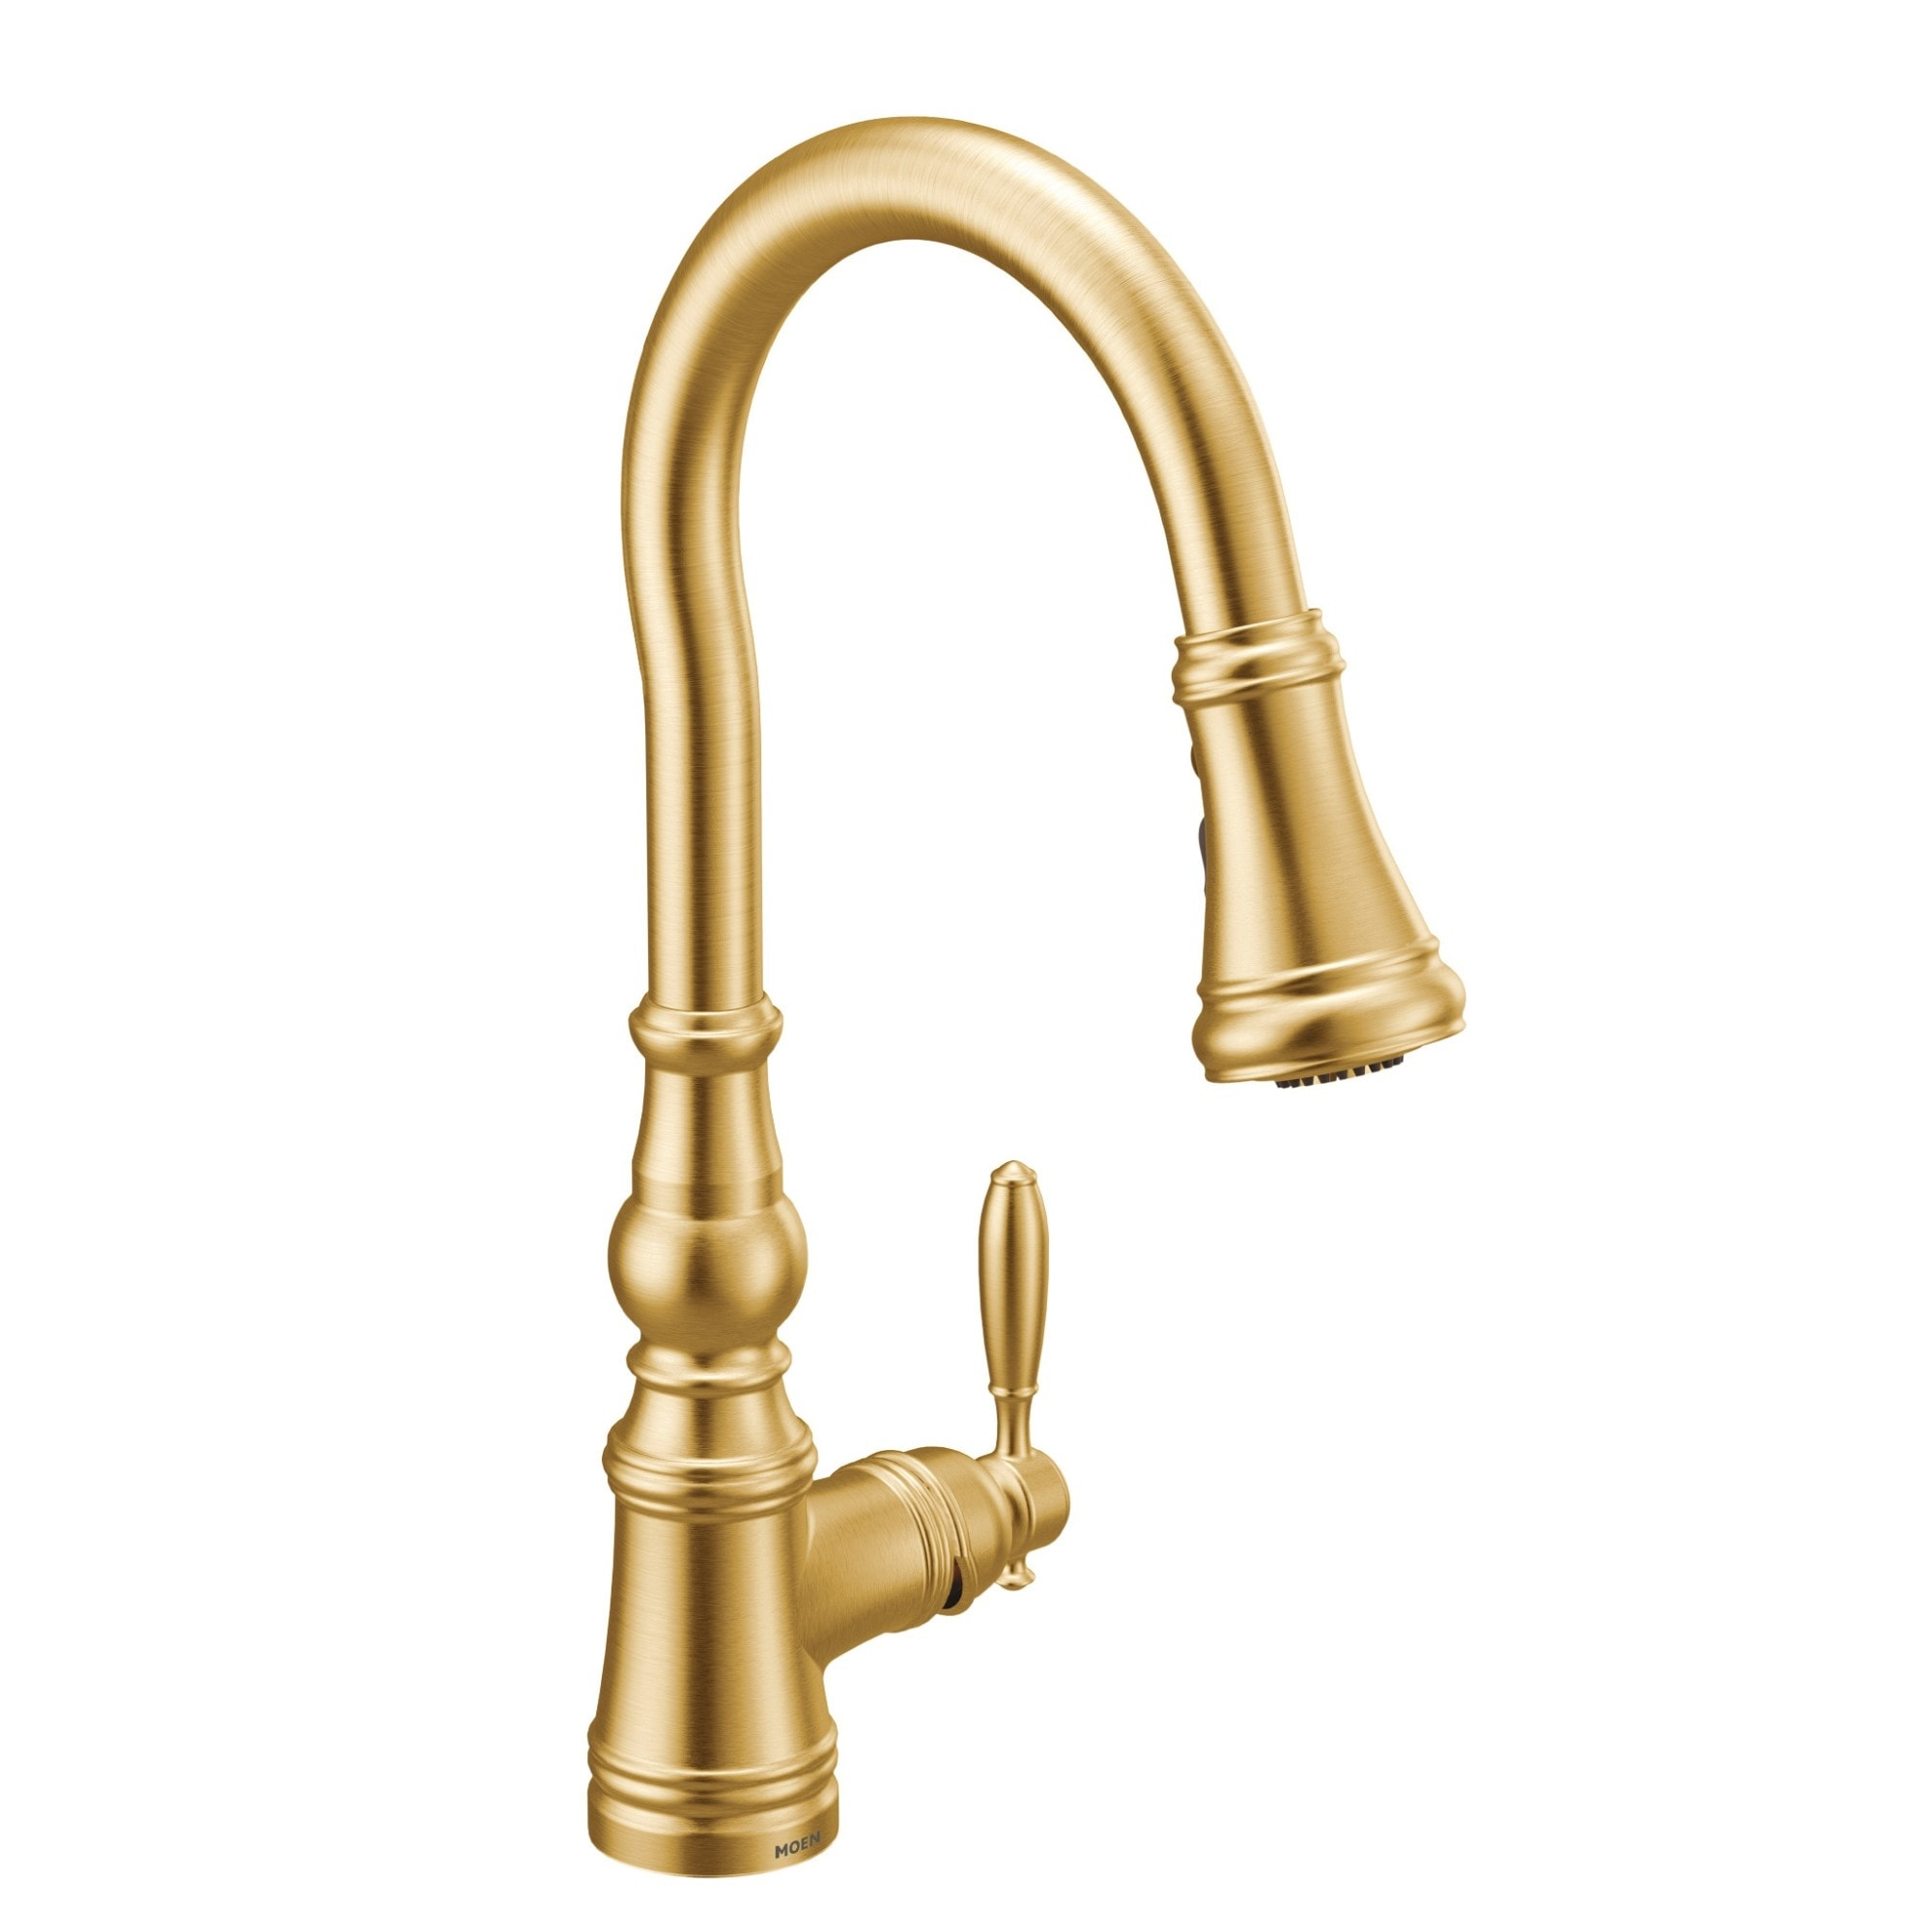 moen one handle pulldown kitchen faucet brushed gold s73004bg